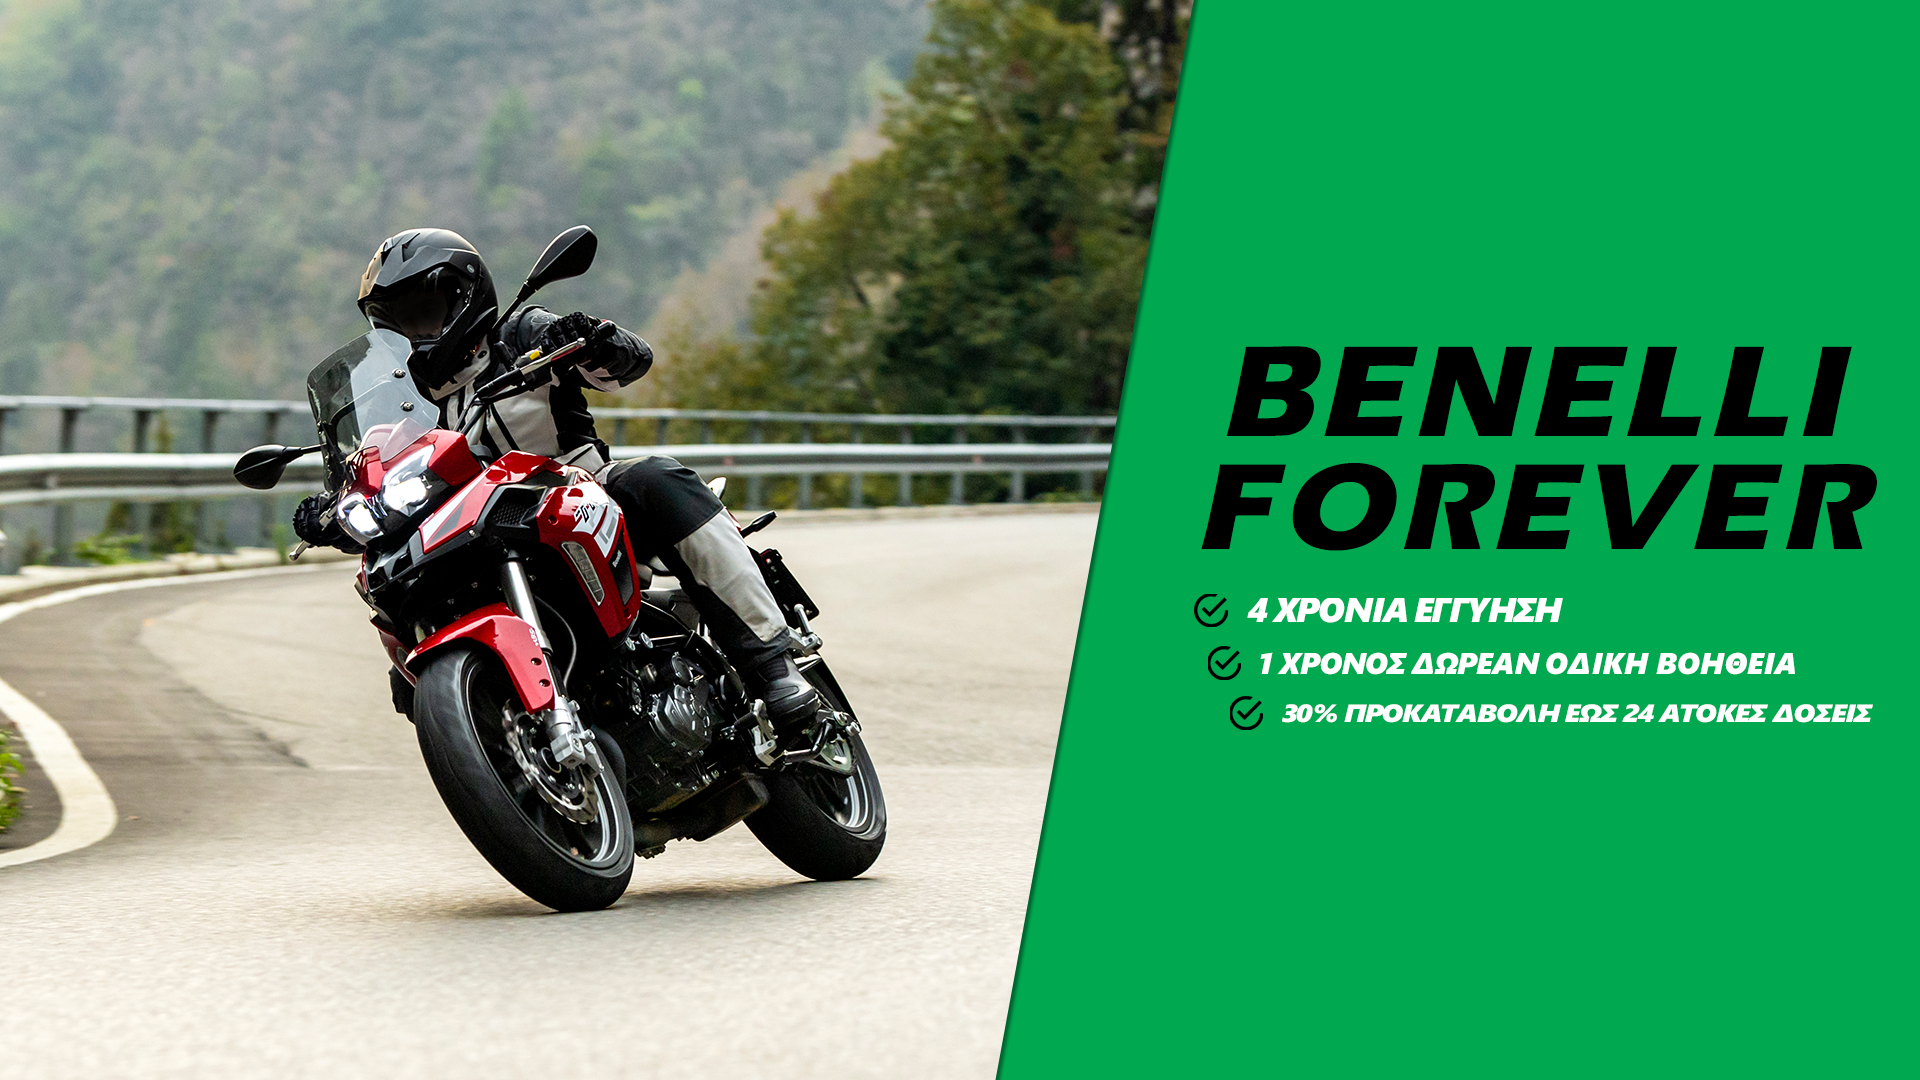 Benelli Forever